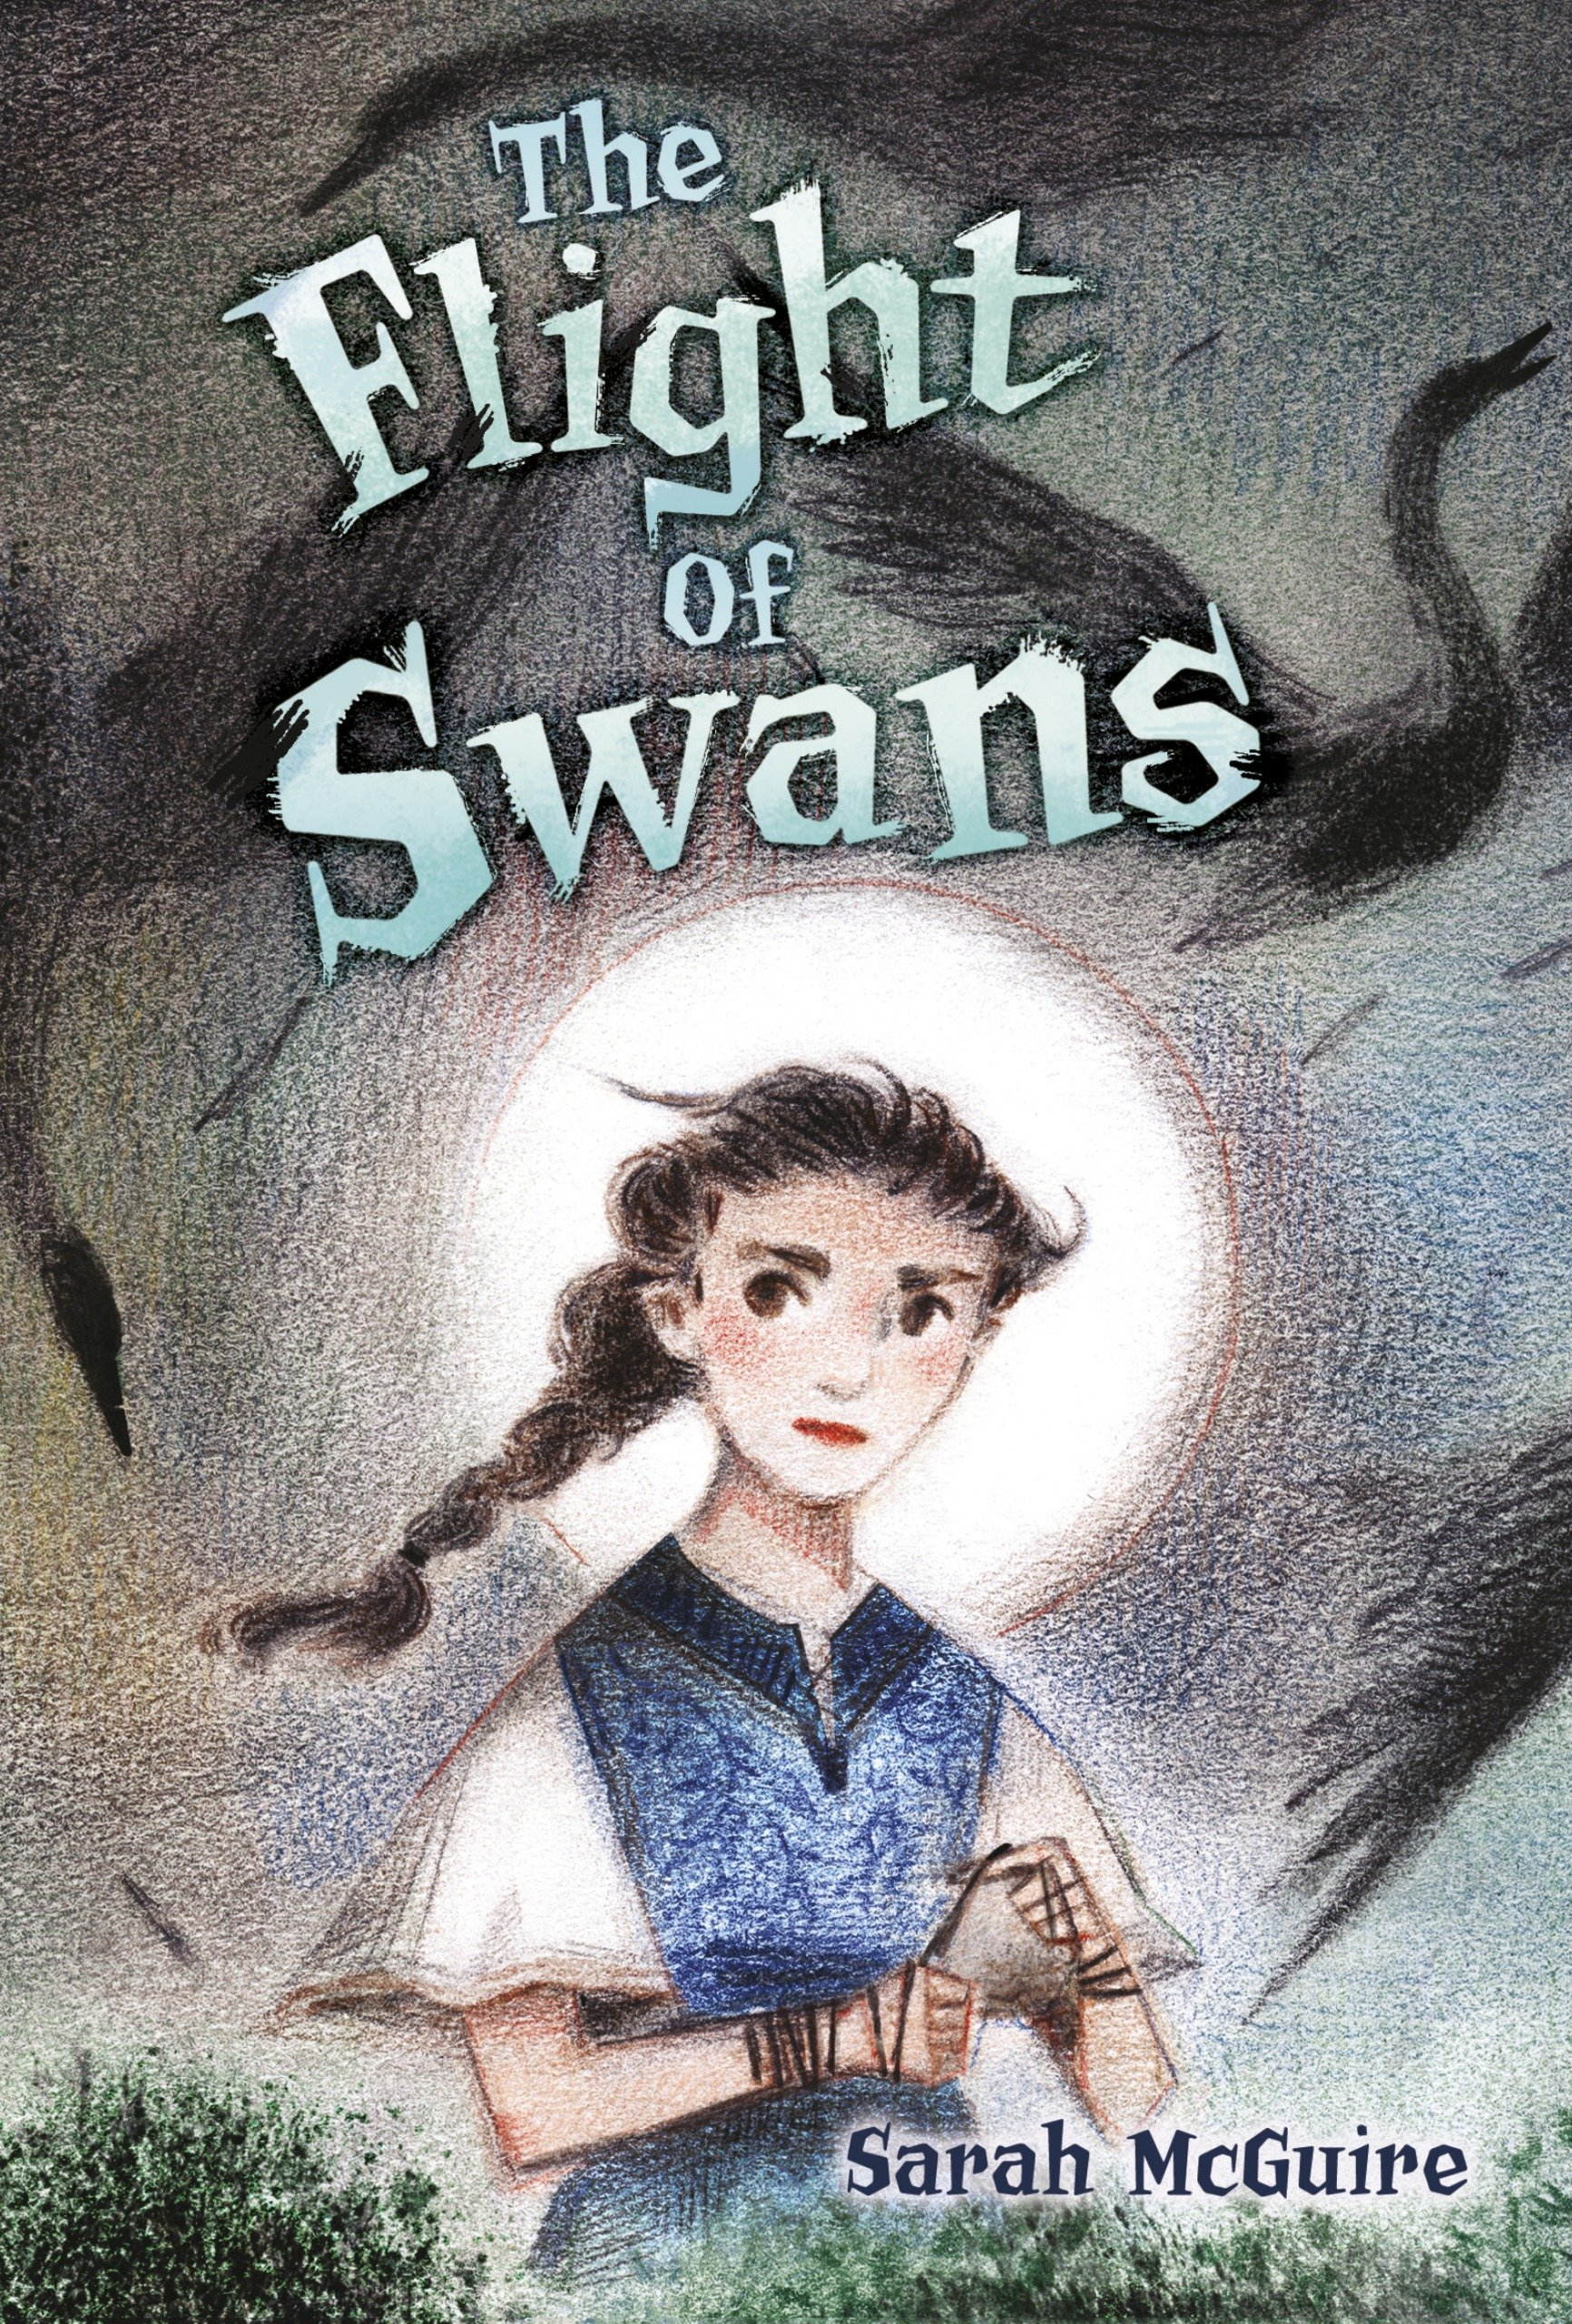 Image result for flight of swans